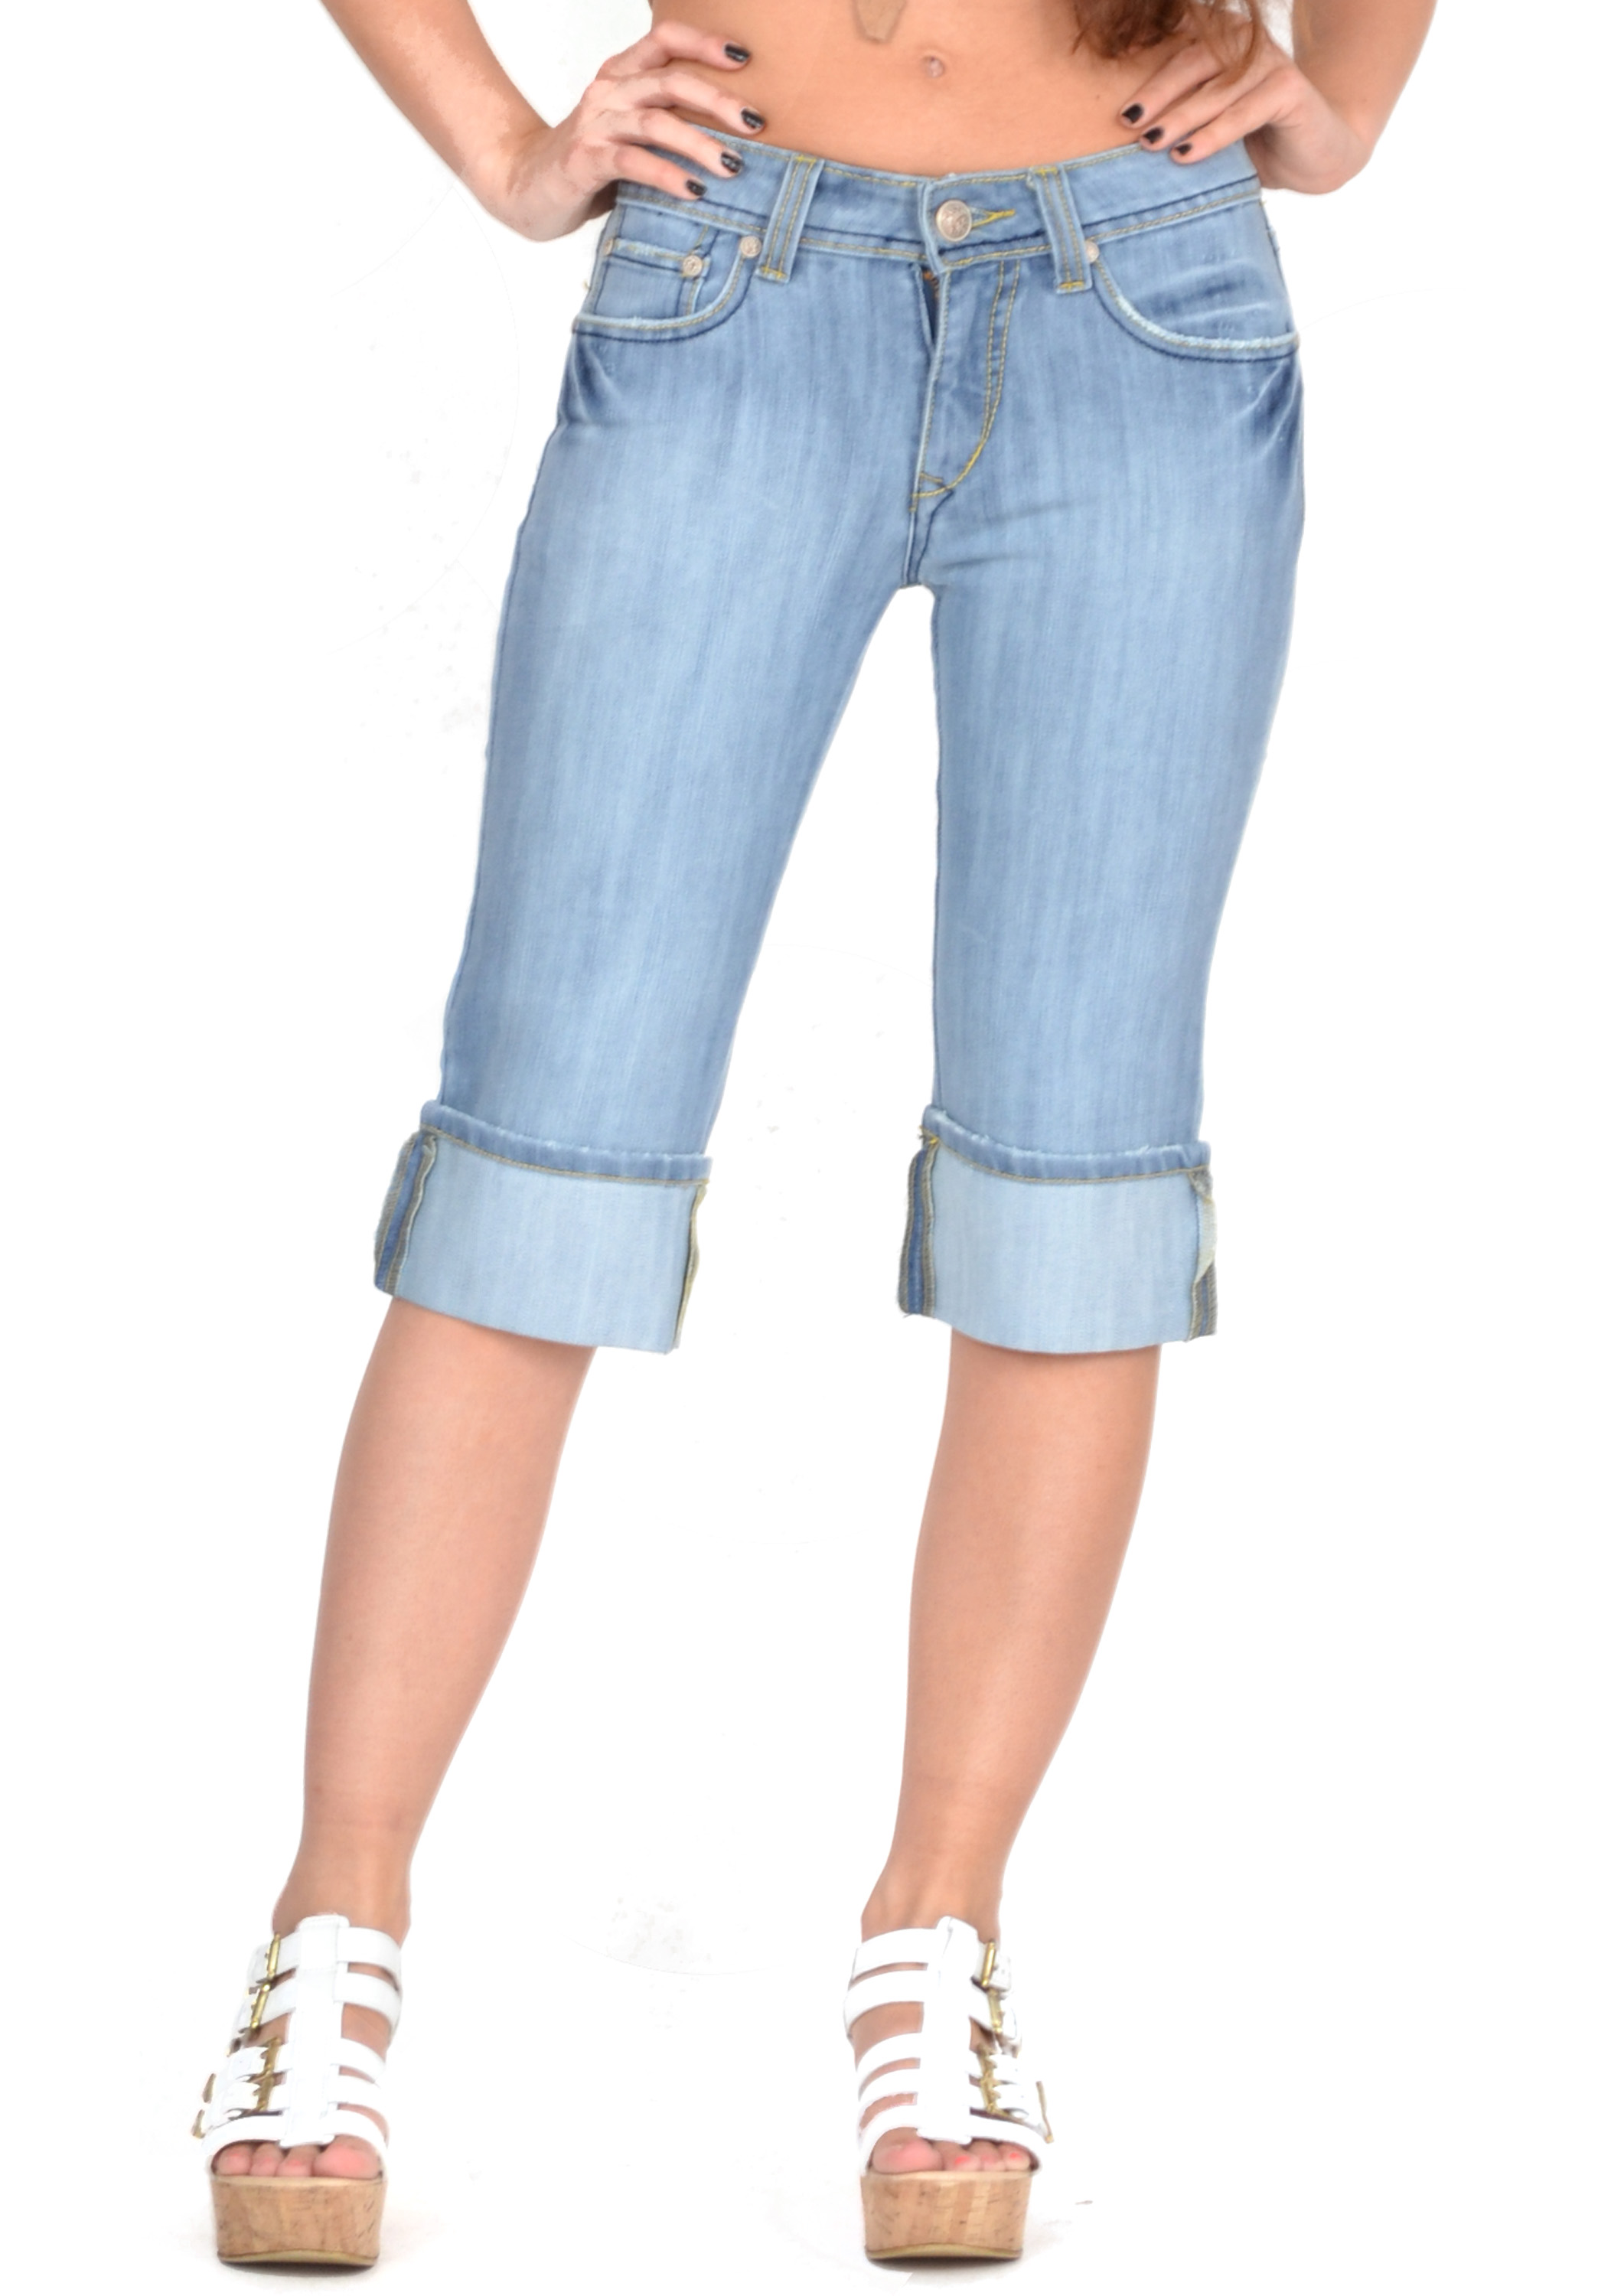 Shop American Eagle Outfitters for men's and women's jeans, T's, shoes and more. Long Jeans For Women. Kick Bootcut Jean ? rise American Eagle Outfitters female adult Shadow Patched Blues cotton 4 X-Long. High-Waisted Girlfriend Jean Regular Price $ Sale Price $